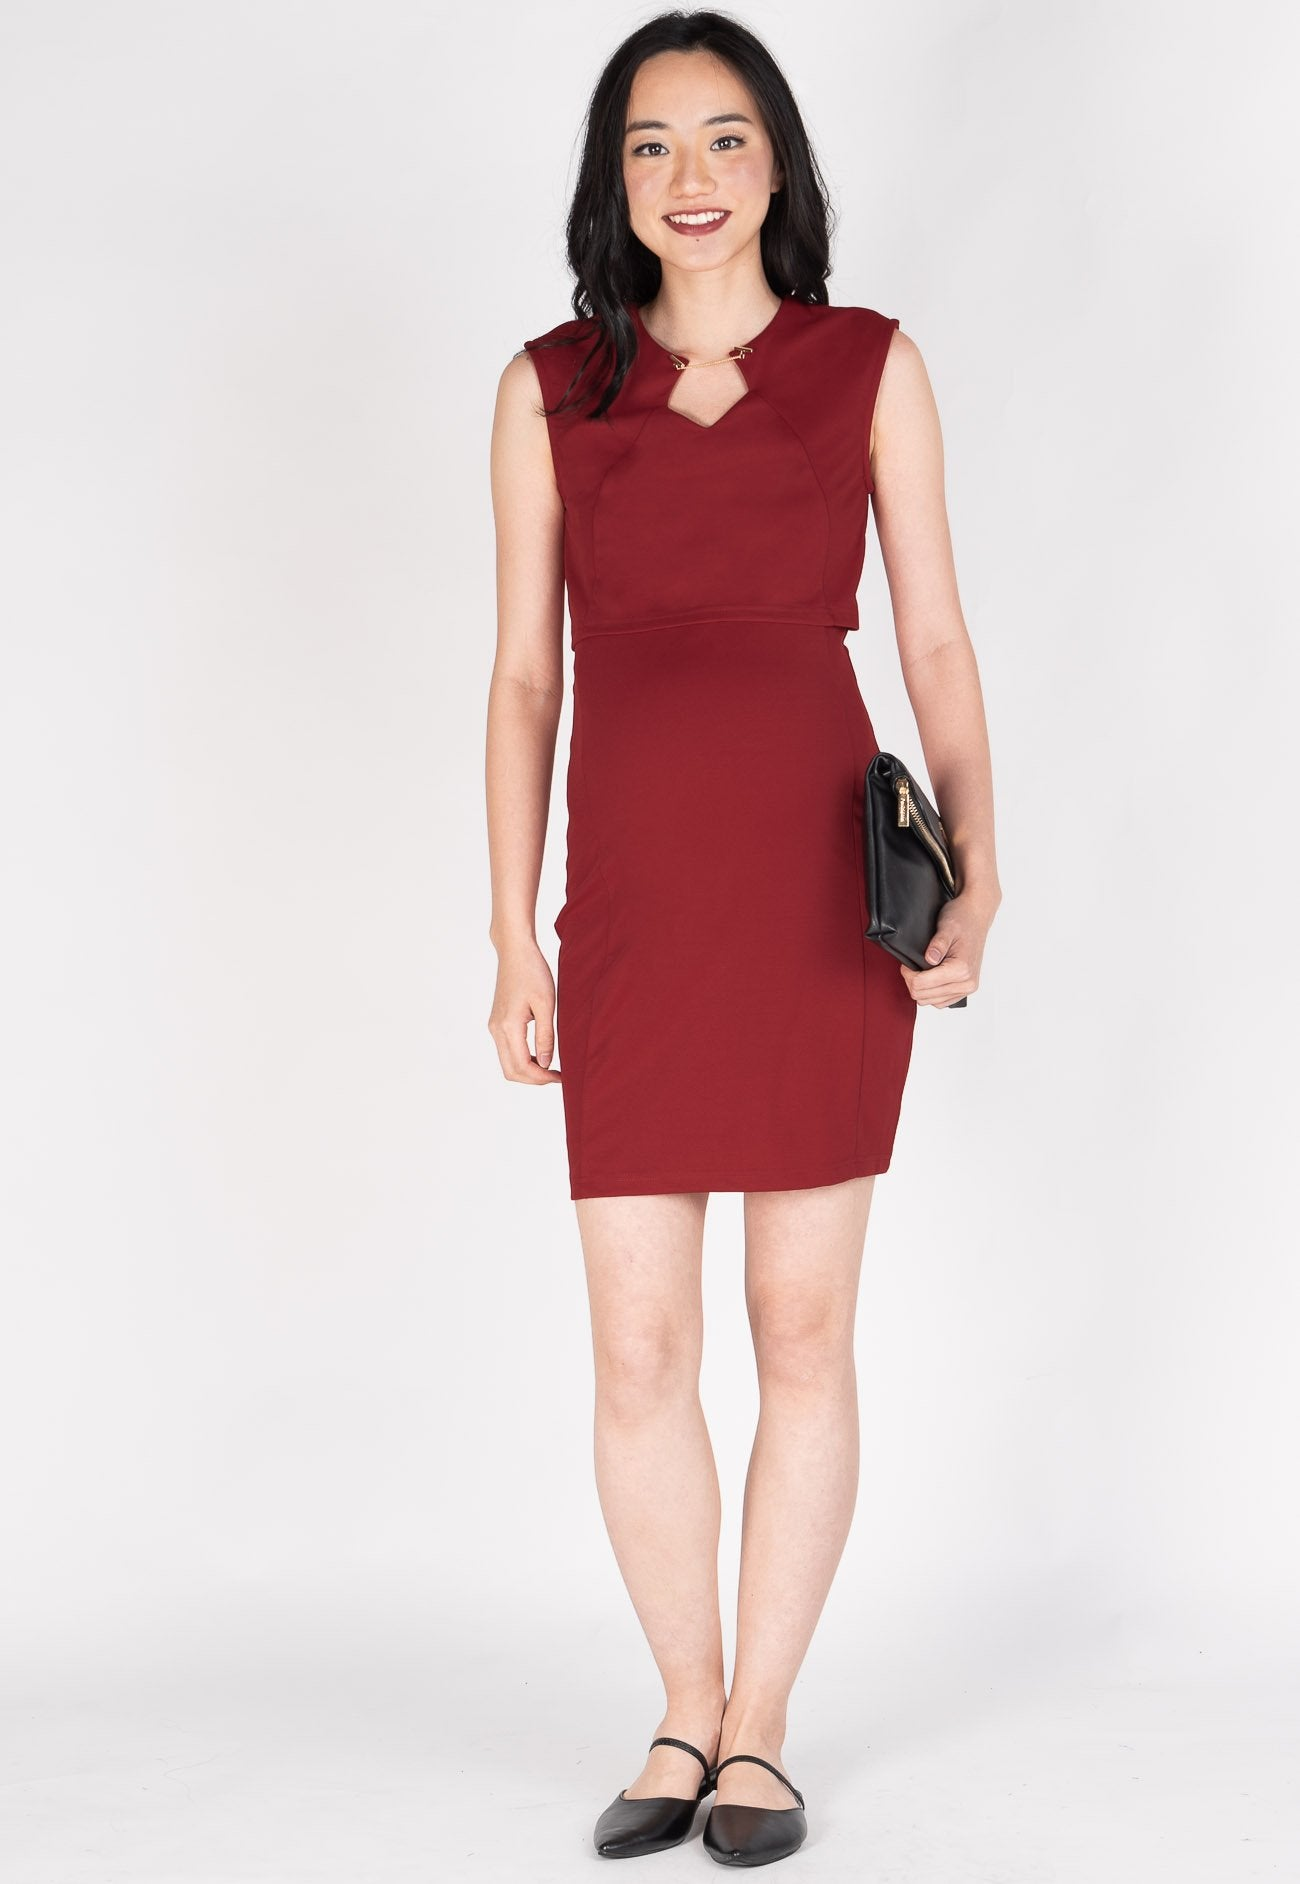 Belva Chain Nursing Dress in Red  by Jump Eat Cry - Maternity and nursing wear